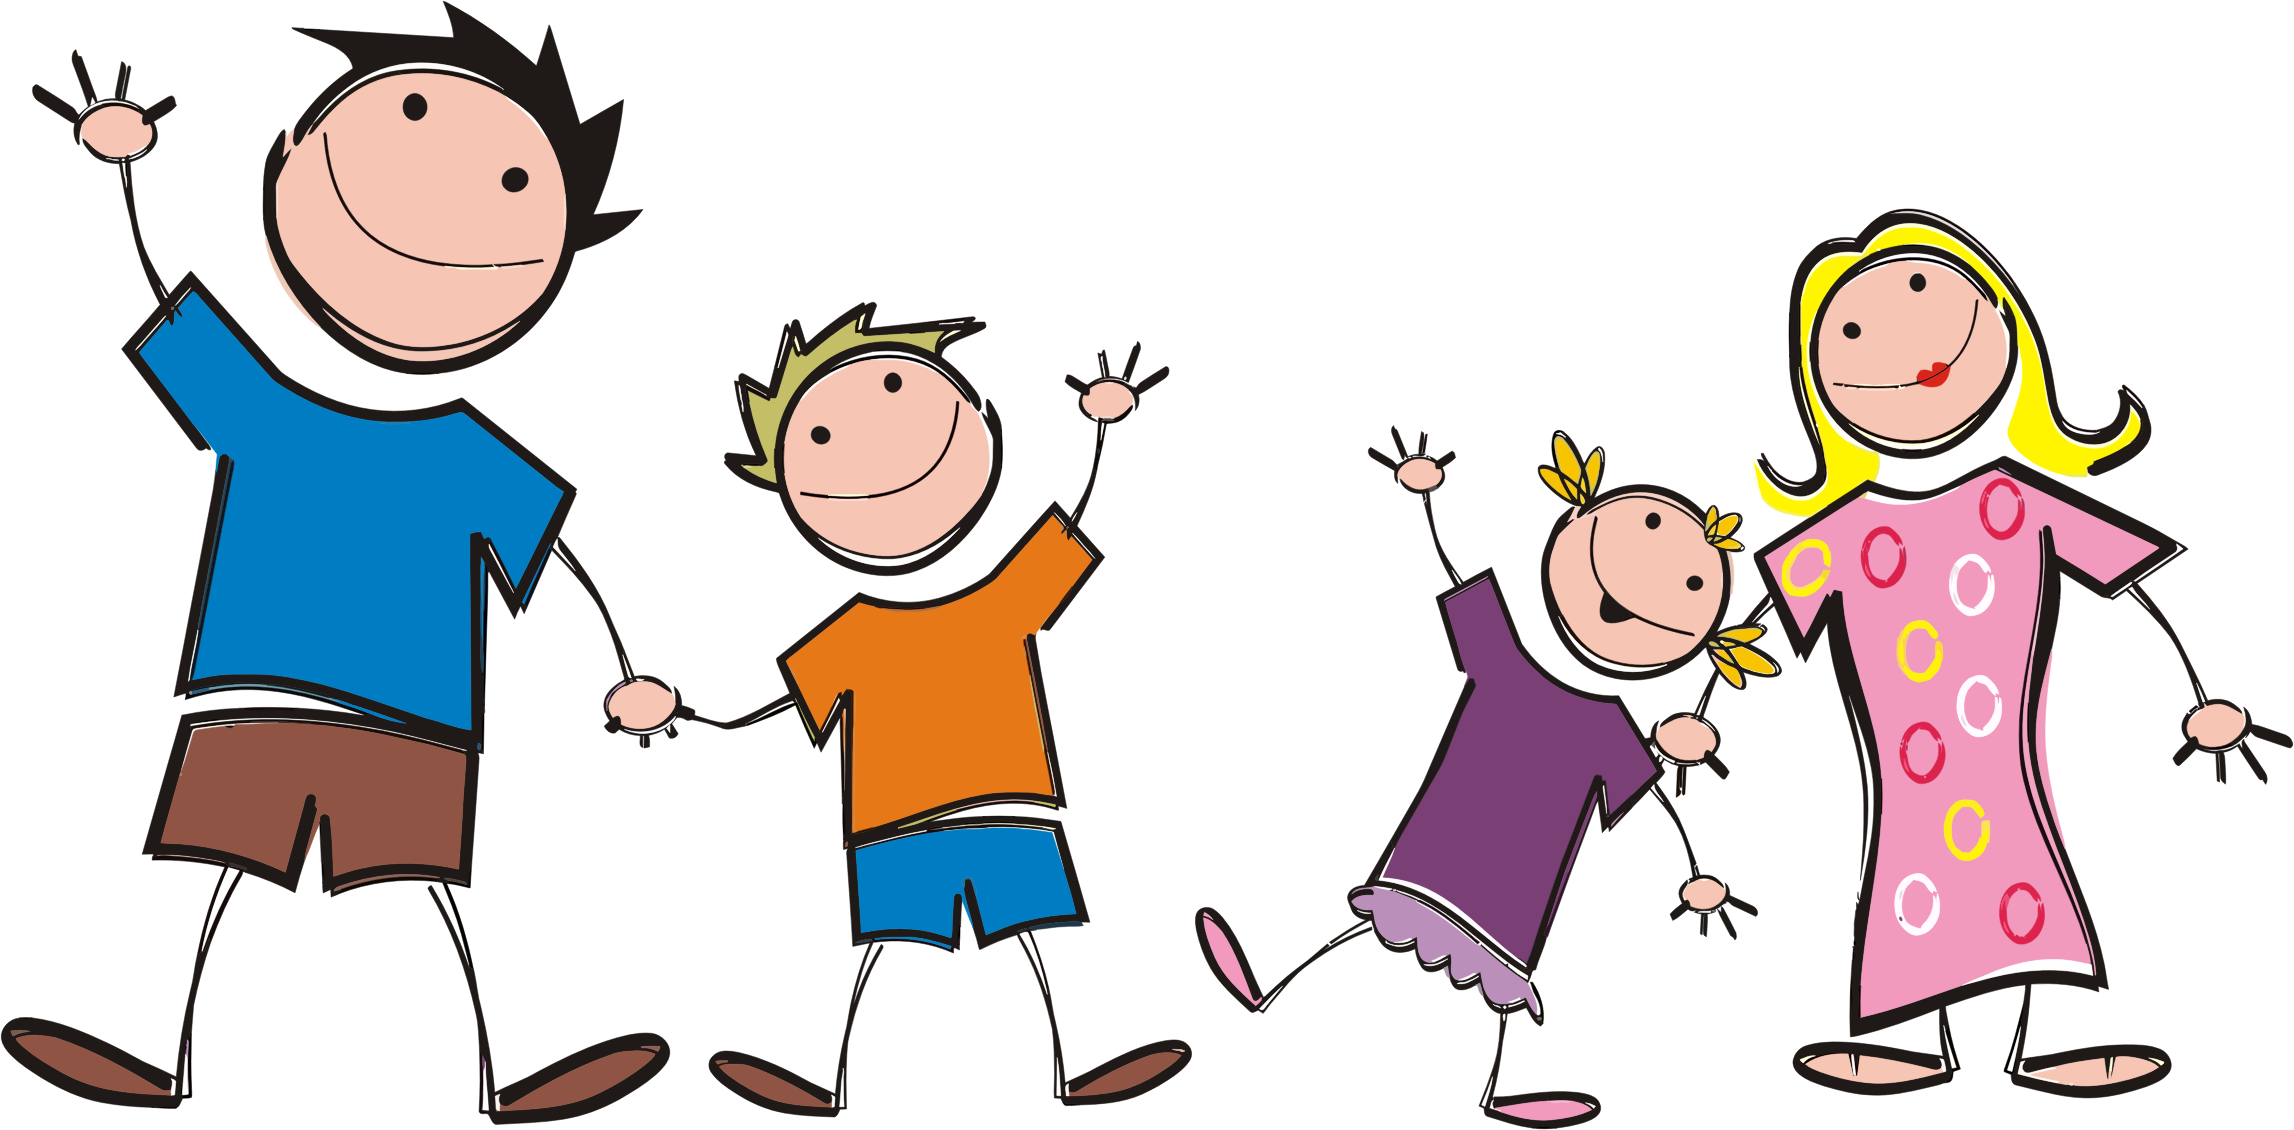 Image of stick family clipart 4 free cli-Image of stick family clipart 4 free clip art figures-16